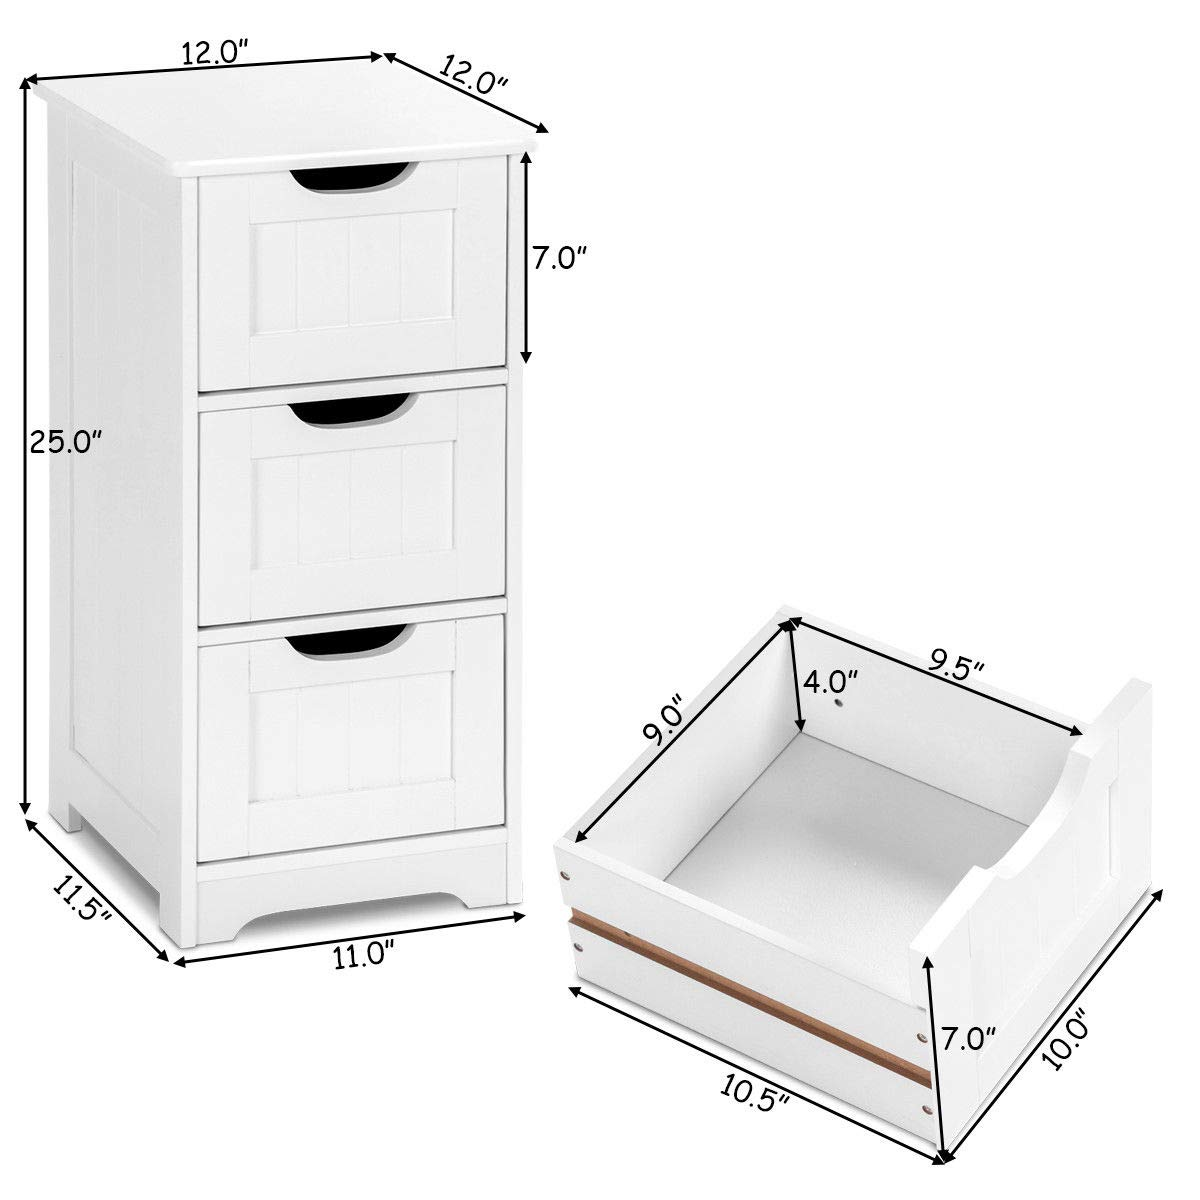 Tangkula Floor Cabinet with 3 Drawers Wooden Storage Cabinet for Home Office Living Room Bathroom Side Table Sturdy Modern Drawer Cabinet Organizer Bedroom Night Stand, White(3 Drawers) by TANGKULA (Image #3)